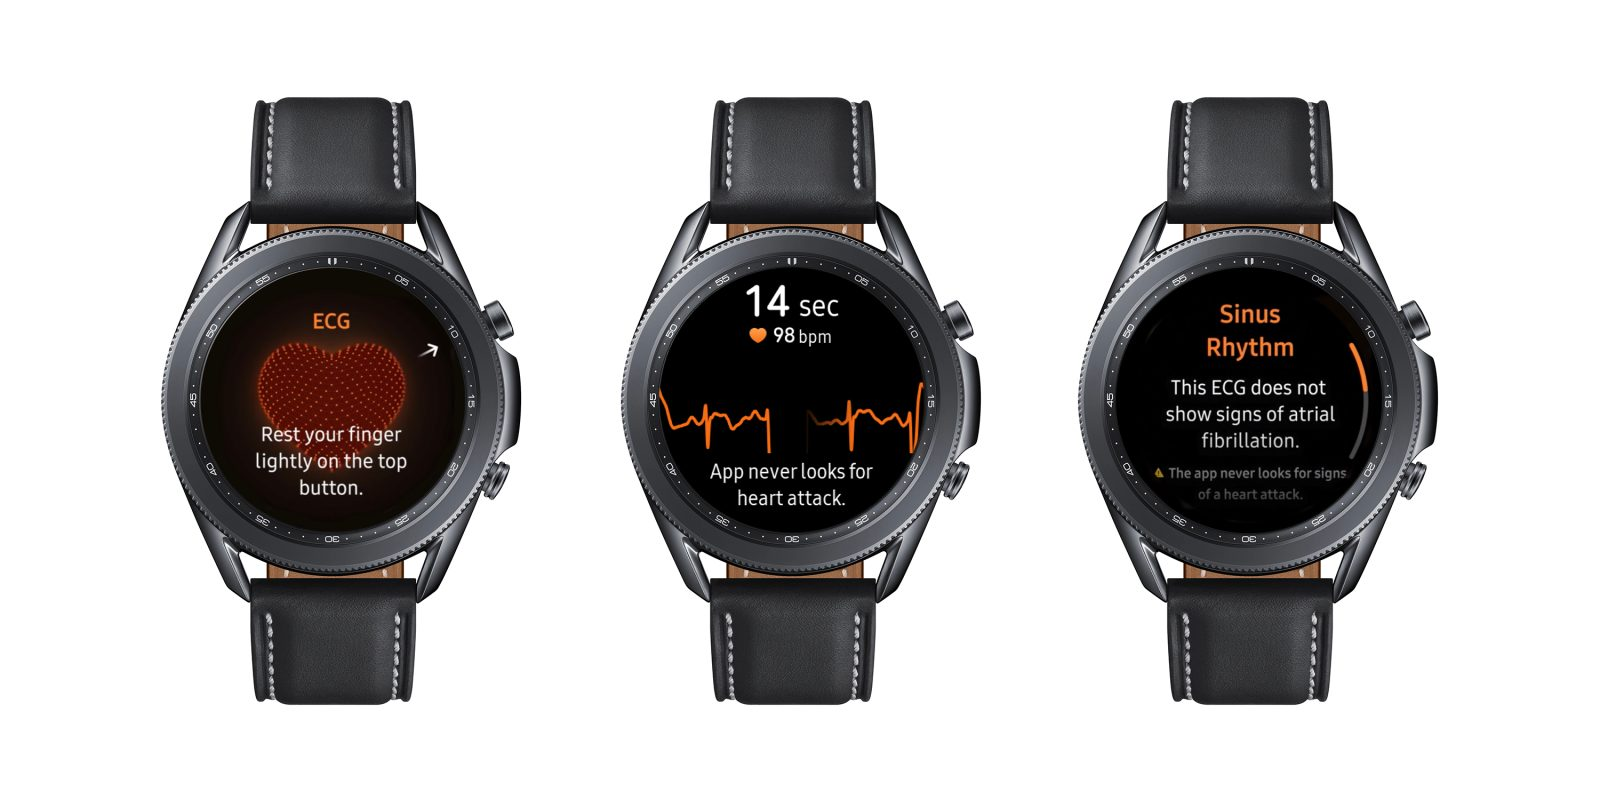 Galaxy Watch ECG, blood pressure features expand globally - 9to5Google